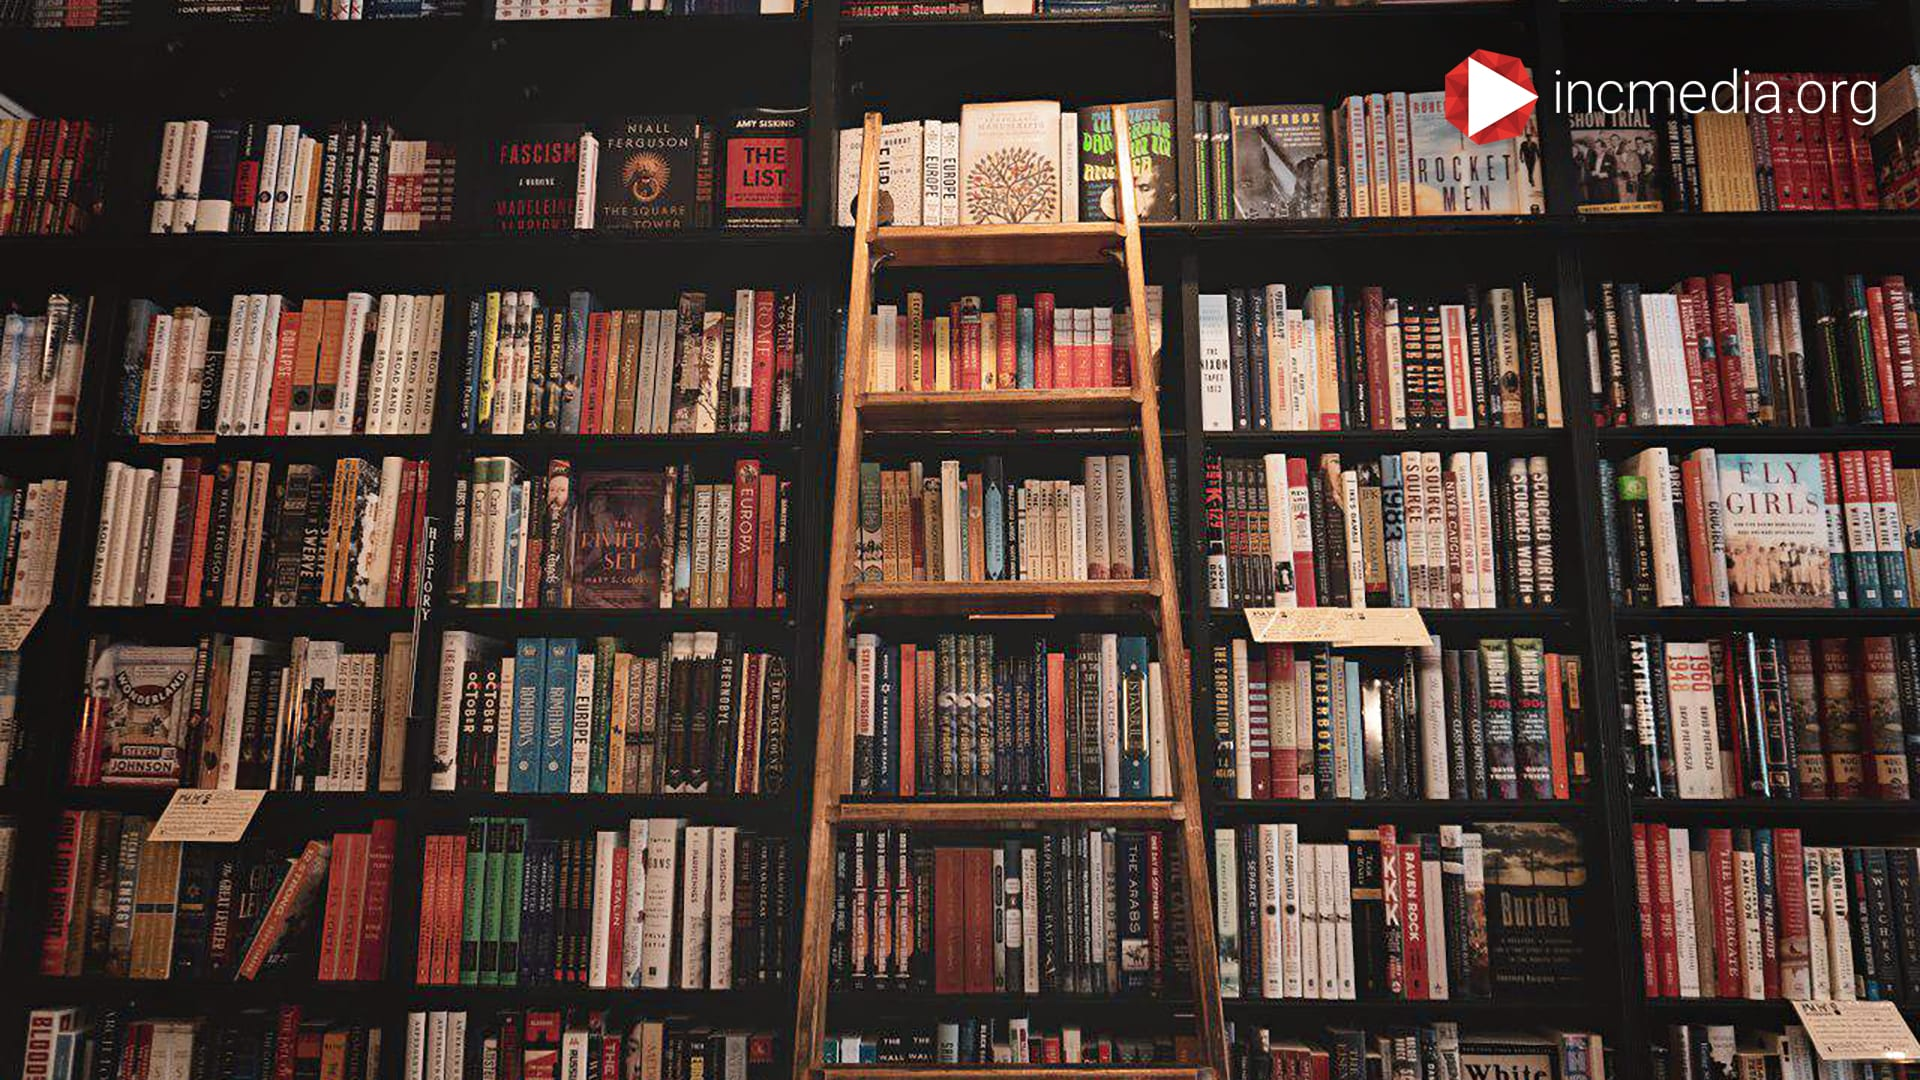 1. Bookshelf of books with ladder.